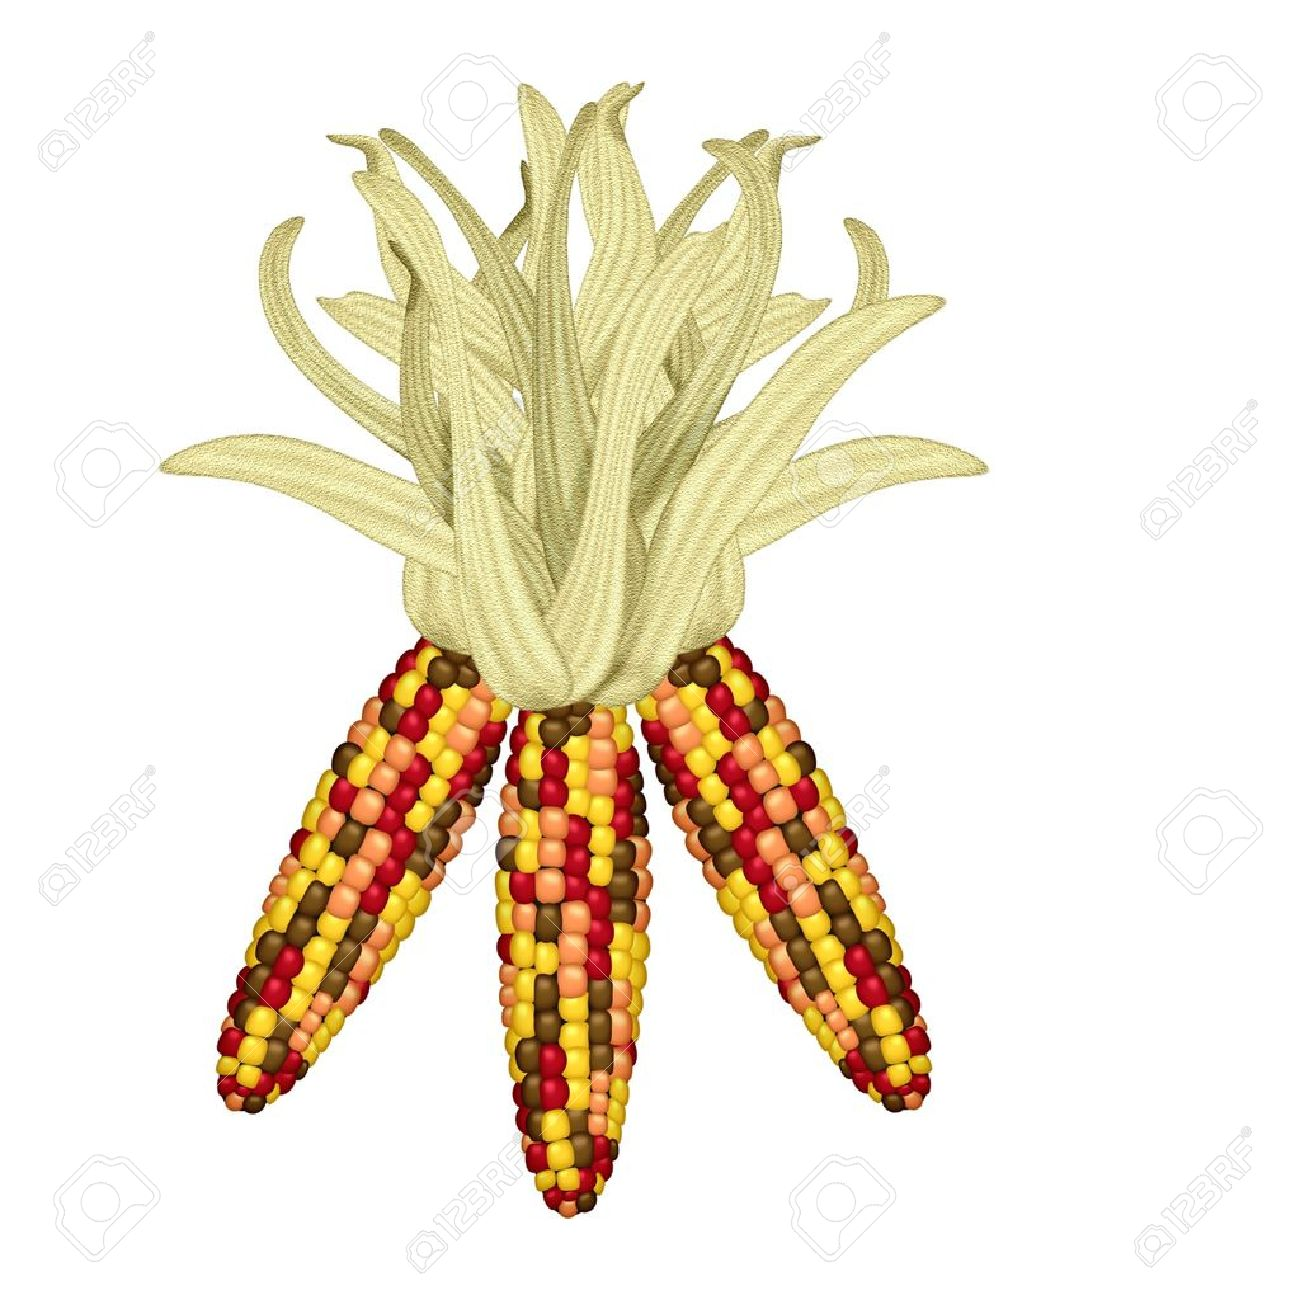 1300x1300 Clip Art Indian Corn Clip Art Indian Corn Clip Art